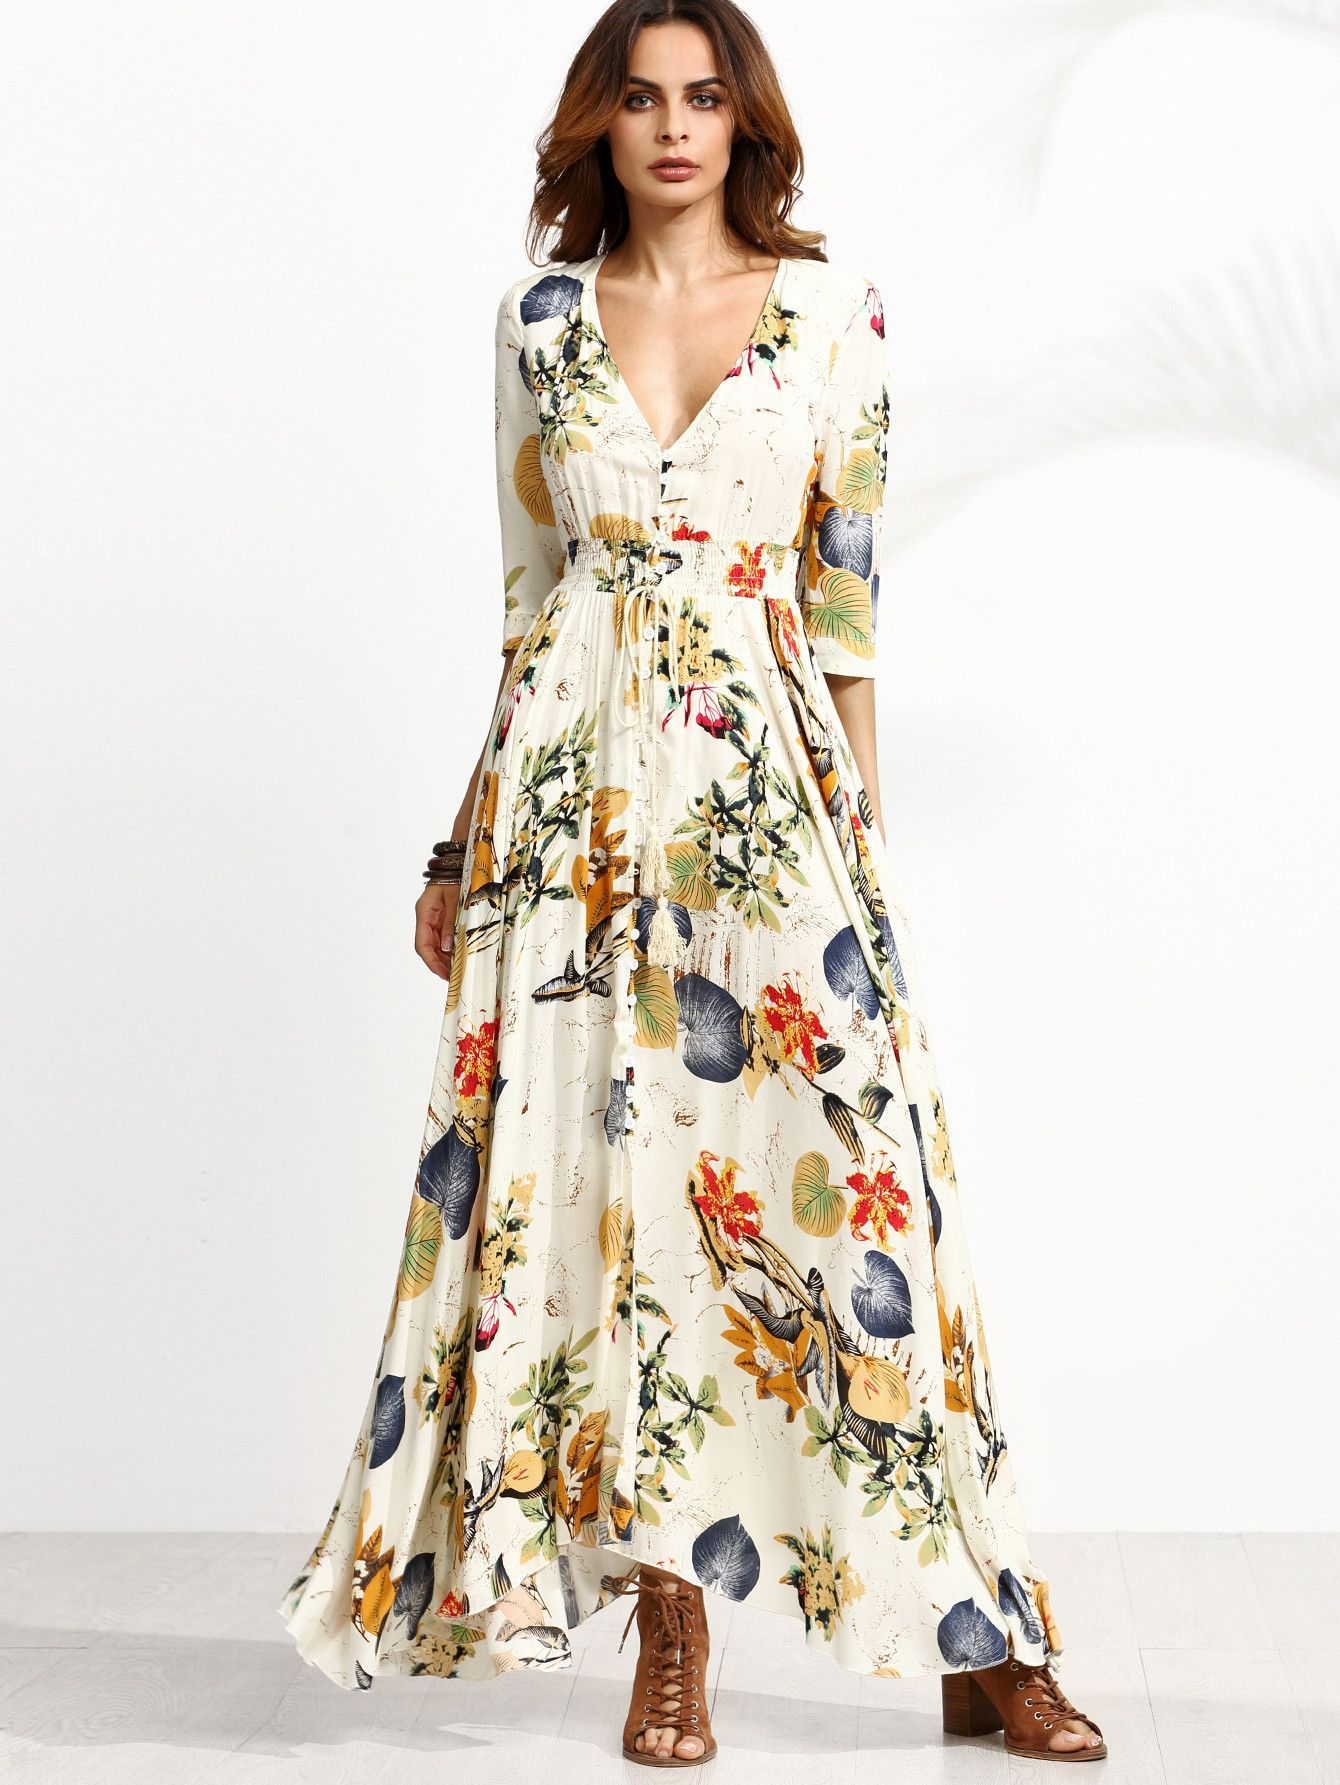 f5771b7745 ... Floral Sleeve Length: Half Sleeve Color: Apricot Dresses Length: Maxi  Style: Sexy, Vacation, Boho Material: 100% Rayon Neckline: Deep V Neck  Silhouette: ...